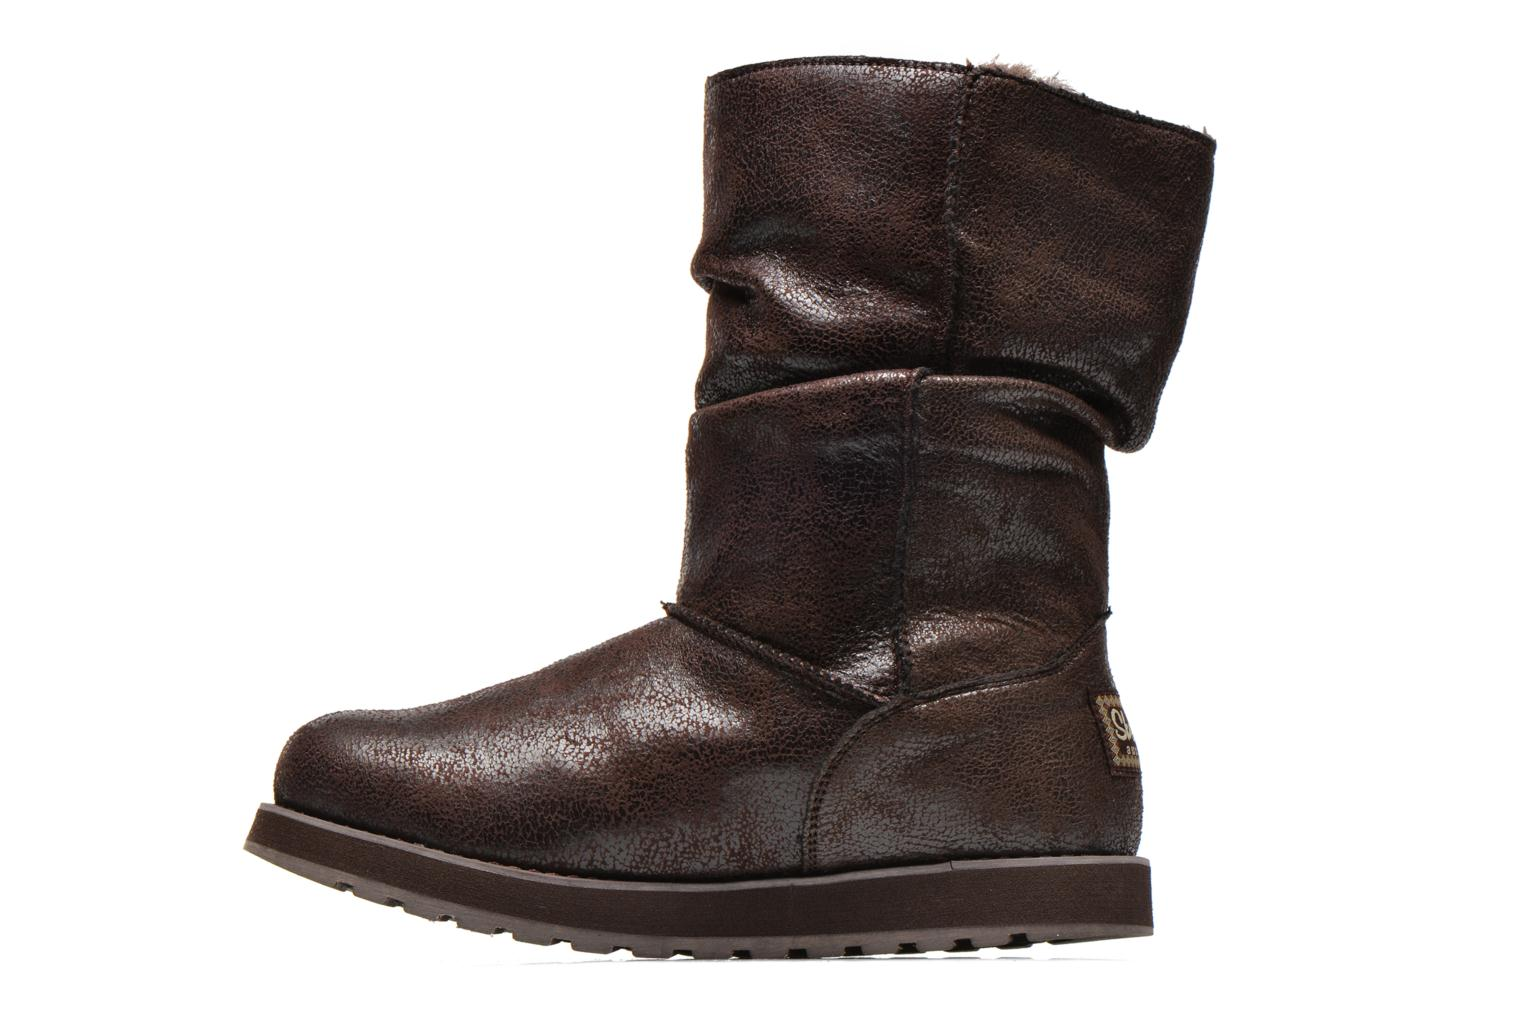 Bottines et boots Skechers Keepsakes Leather-Esque 48367 Marron vue face